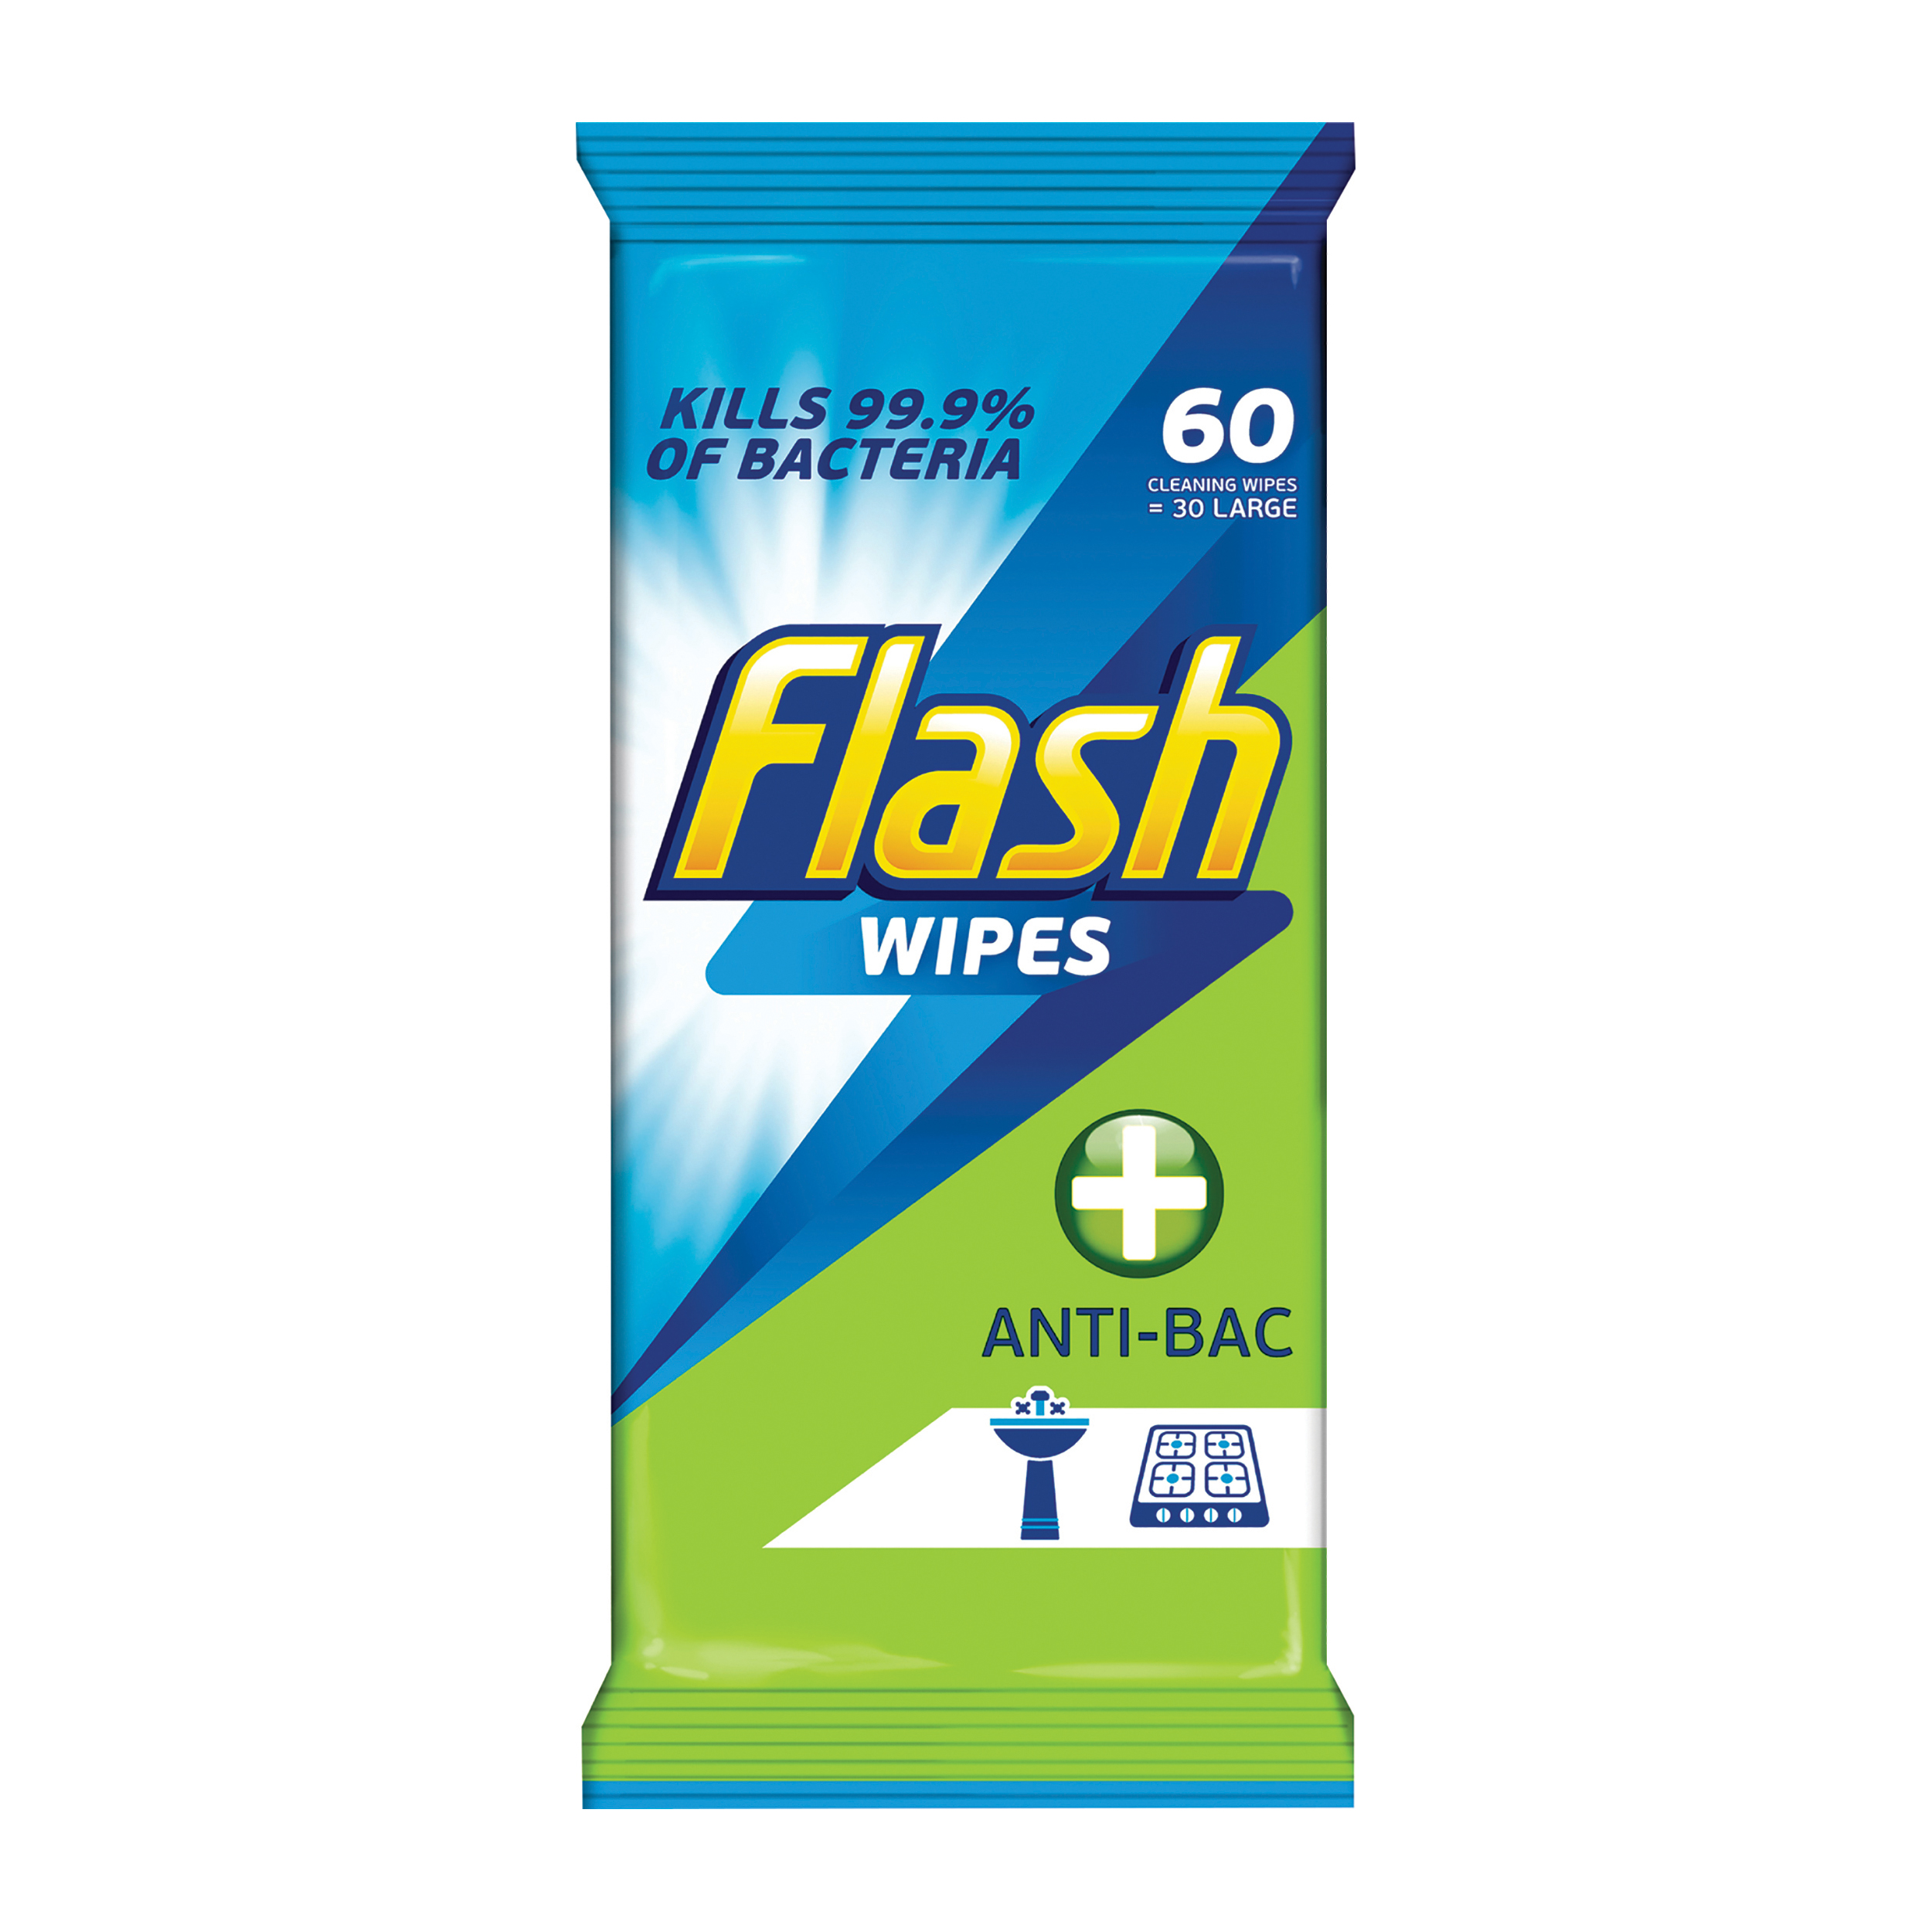 Laundry Basket Flash Cleaning Wipes Unscented Antibacterial Ref 0706065 60 Wipes